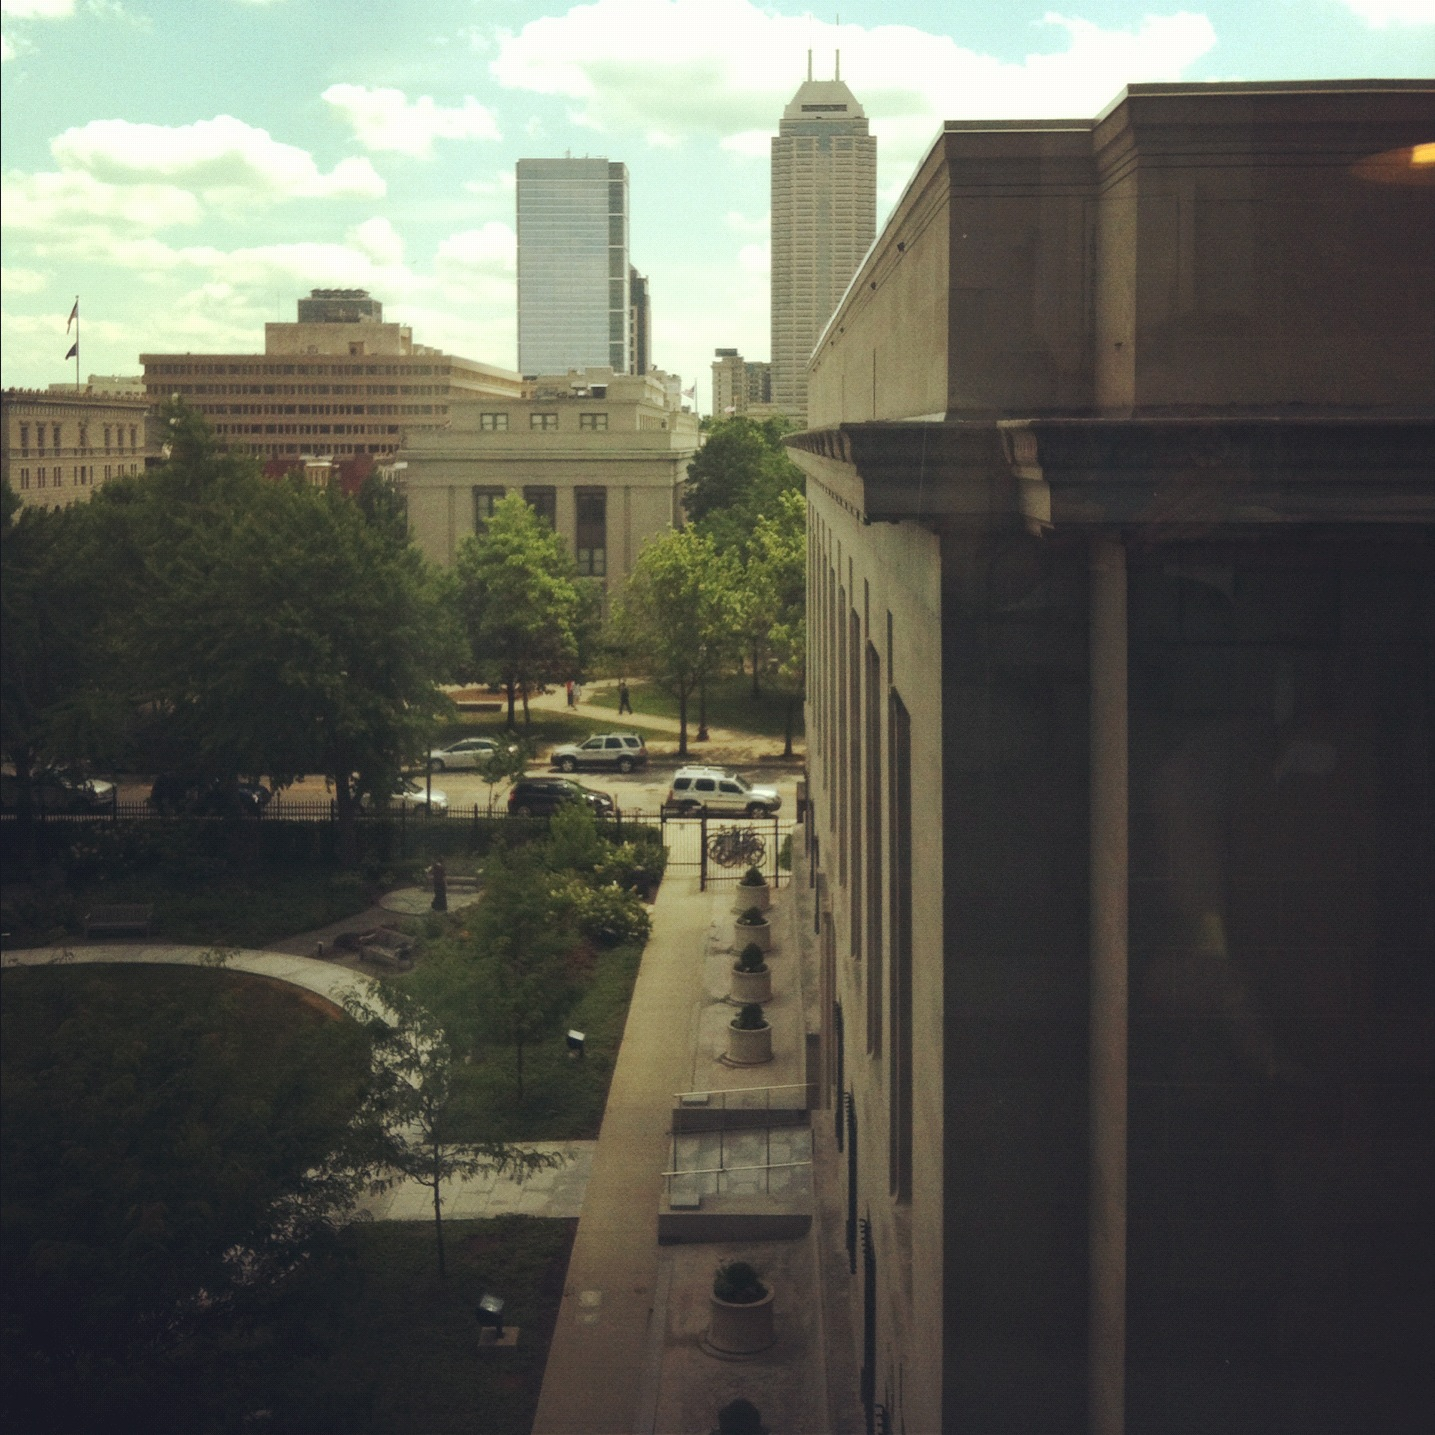 Room With a View: Central Library